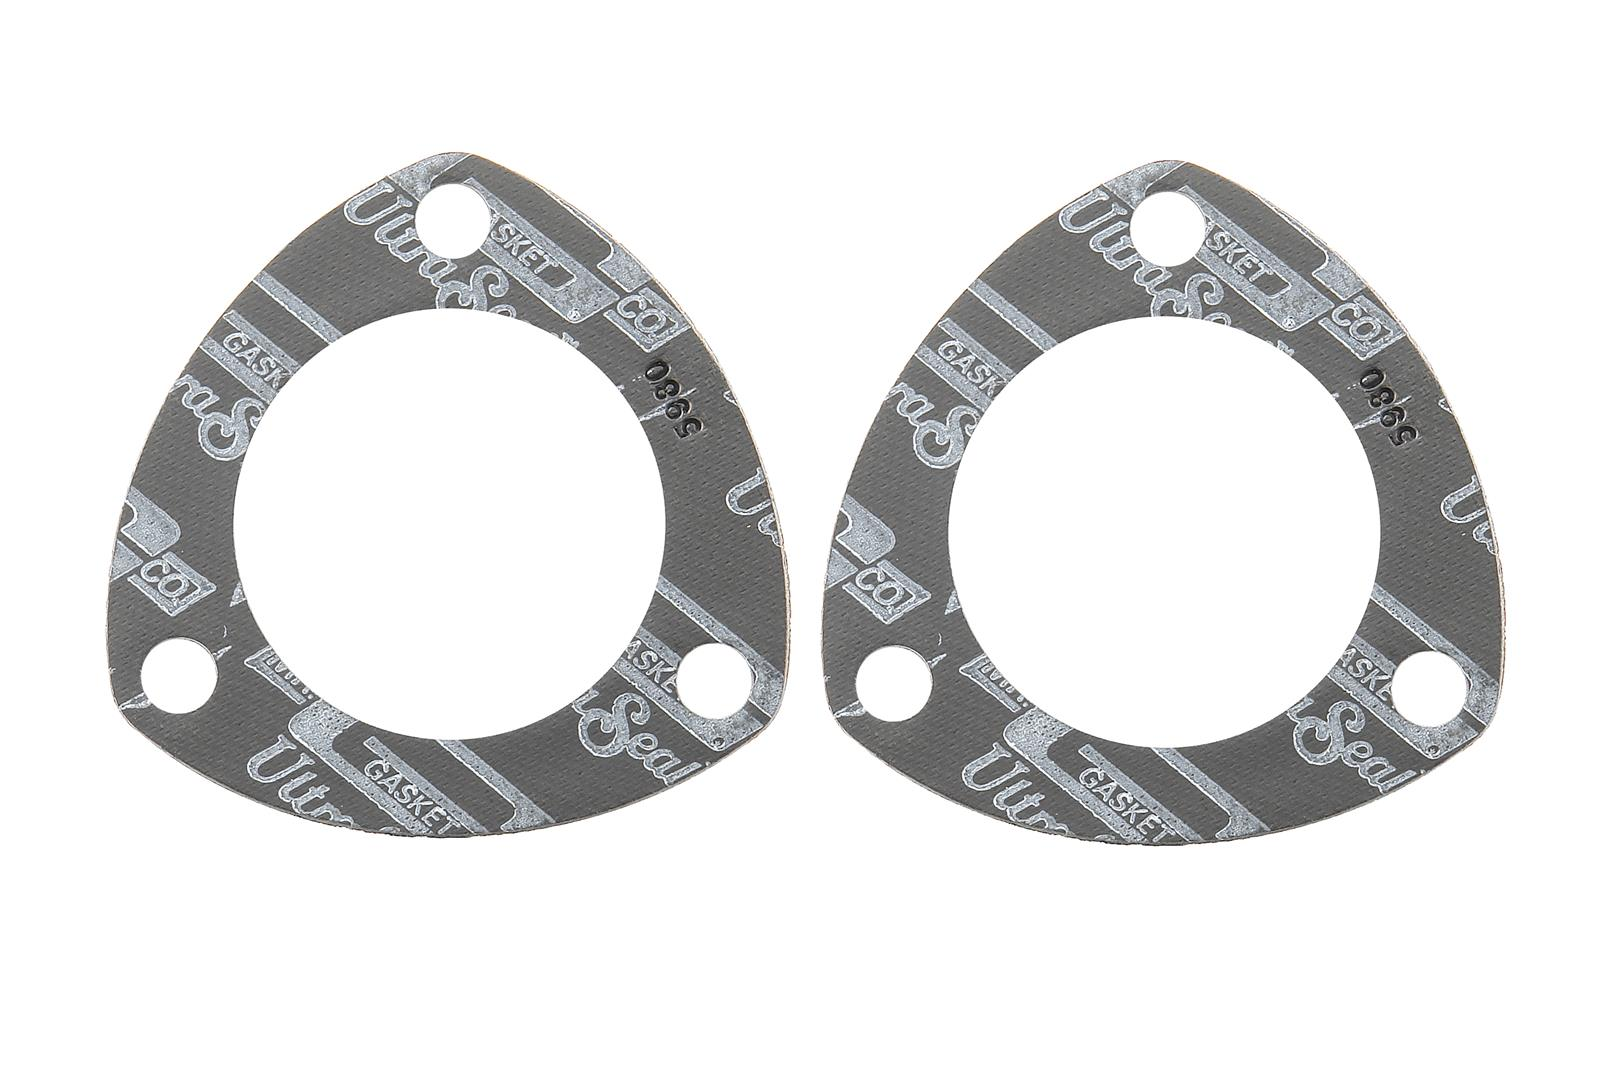 gasket seal. mr. gasket ultra-seal collector gaskets 5980 - free shipping on orders over $99 at summit racing seal